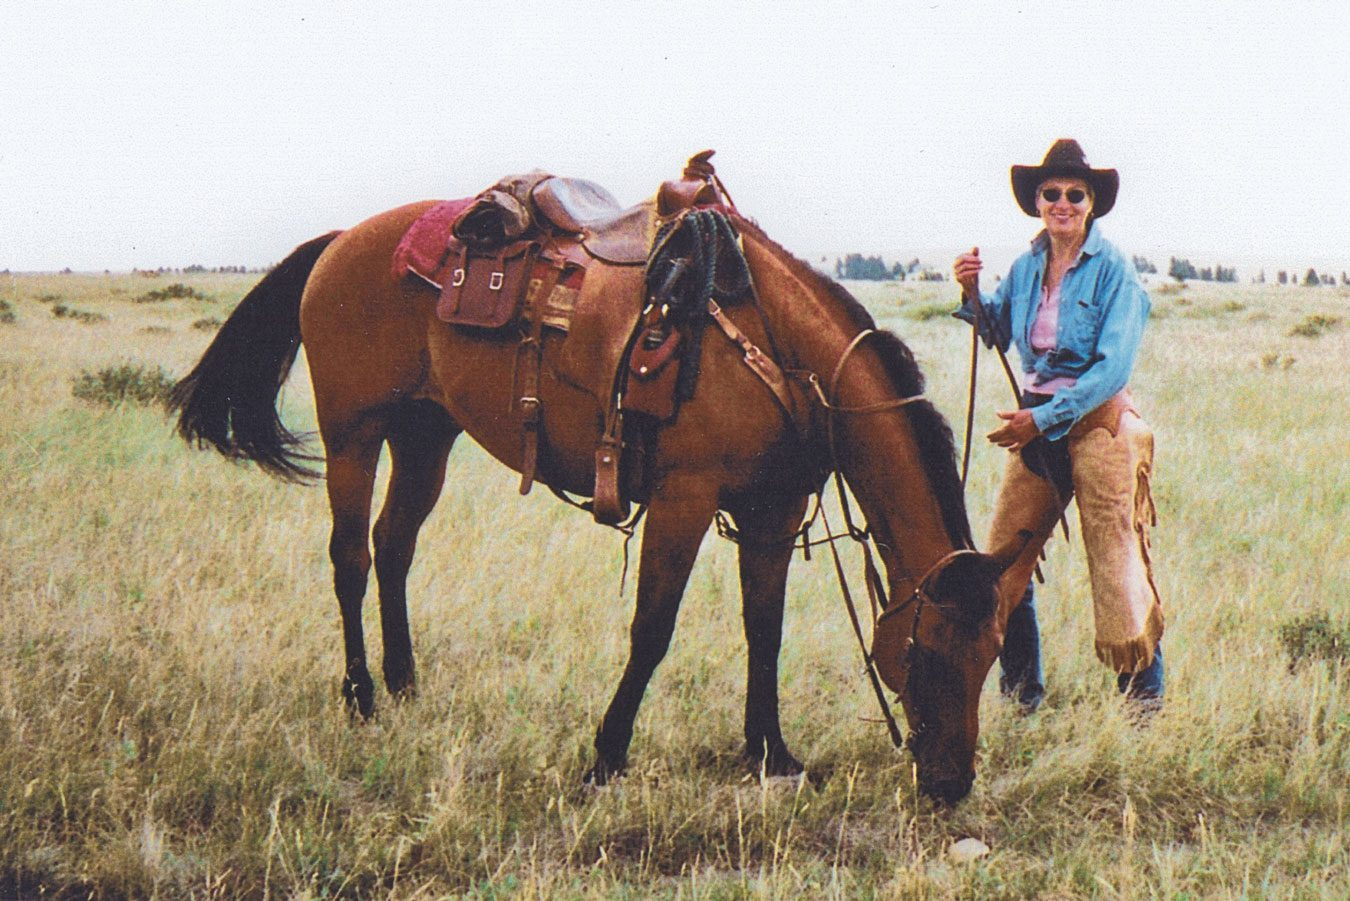 Janie (J.F.) and her beloved horse, Skookum Cat, in 1997